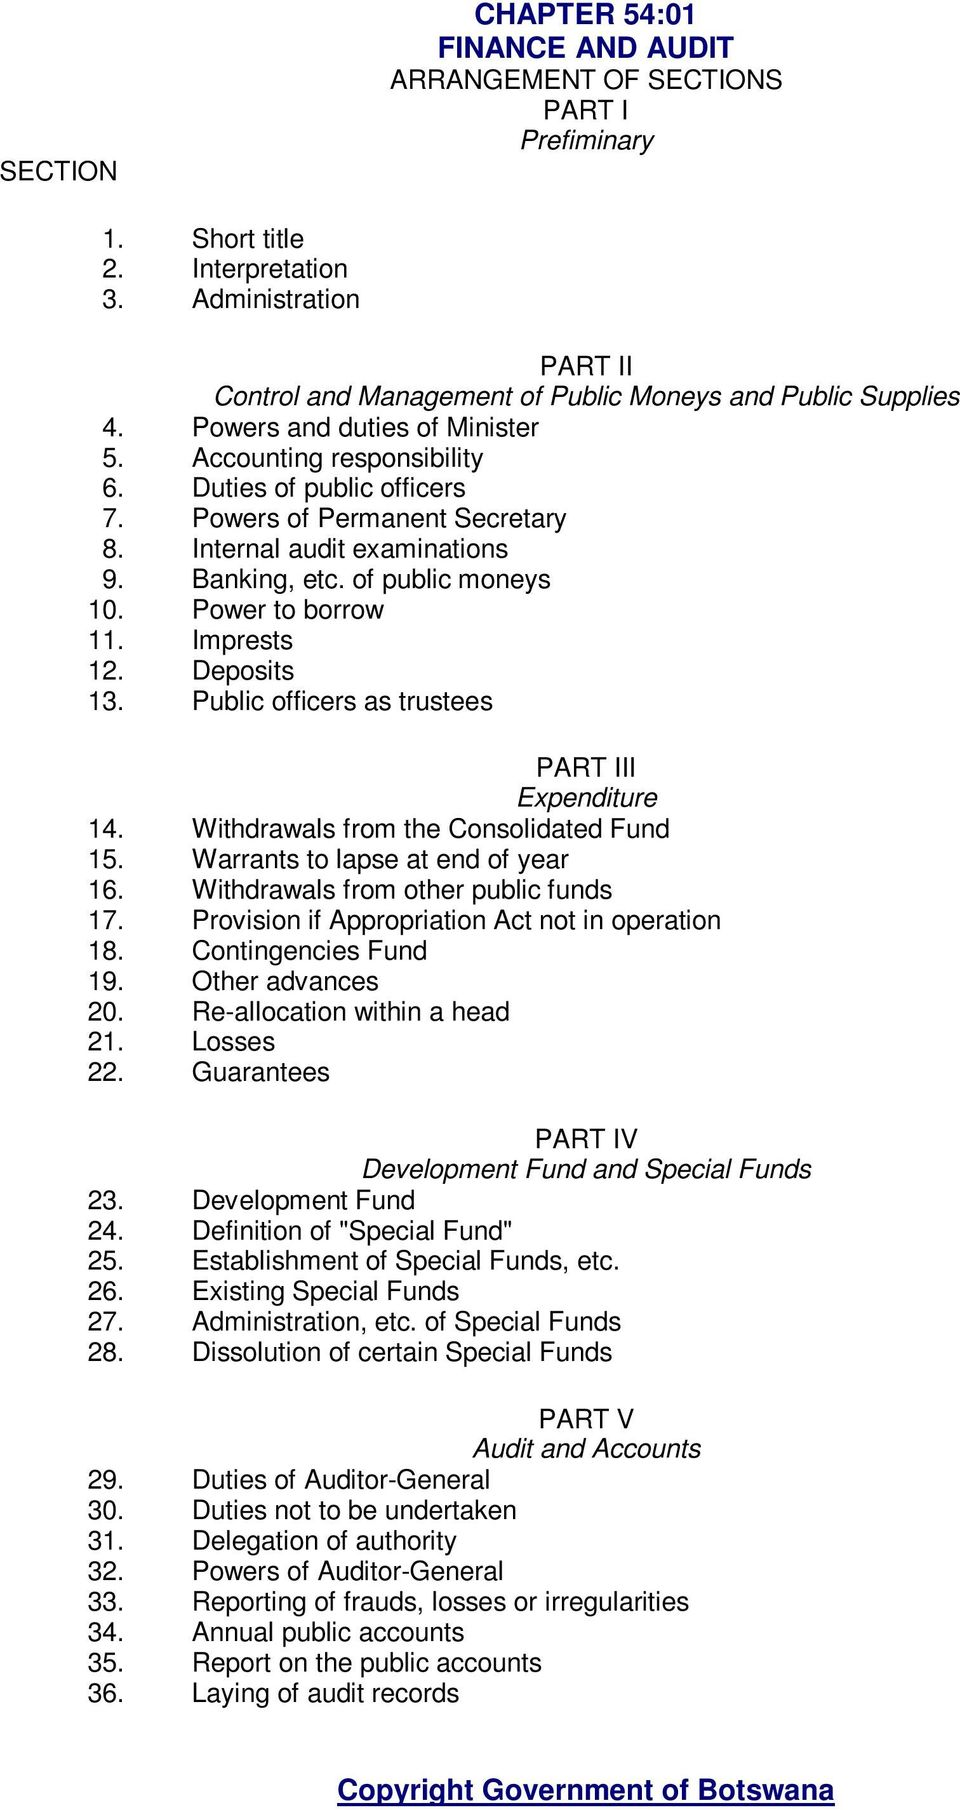 Powers of Permanent Secretary 8. Internal audit examinations 9. Banking, etc. of public moneys 10. Power to borrow 11. Imprests 12. Deposits 13. Public officers as trustees PART III Expenditure 14.